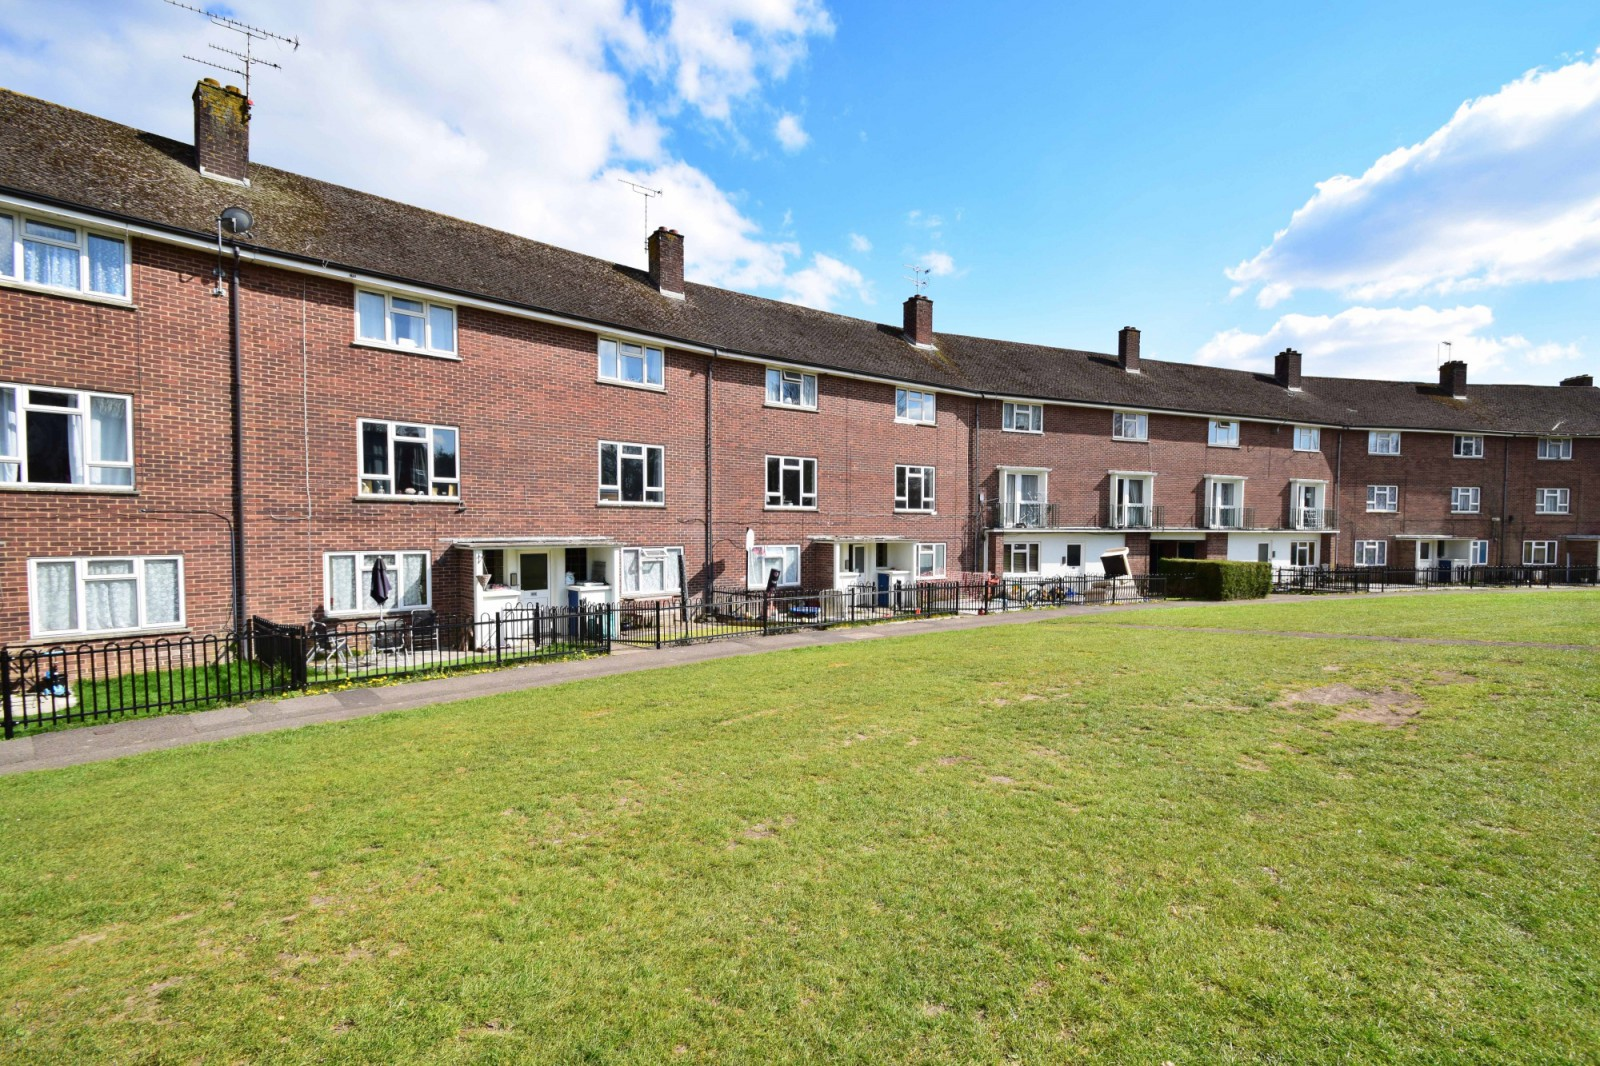 17 Trussell Crescent, Winchester SO22 6DY